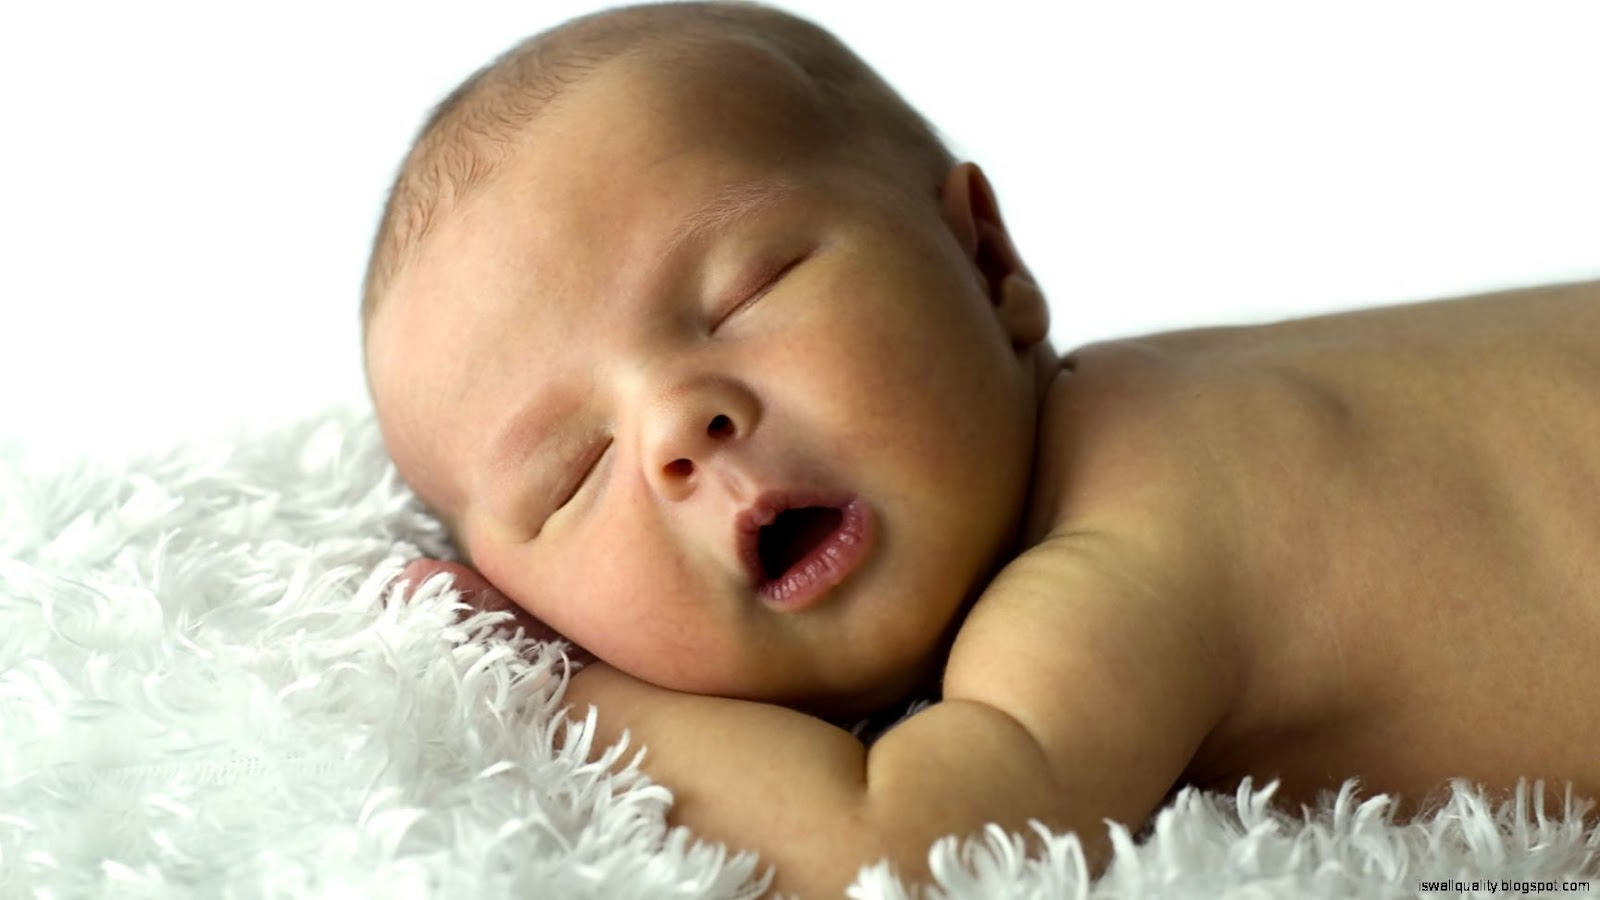 Sleeping Baby Cute Wallpaper Hd Wallpapers Quality